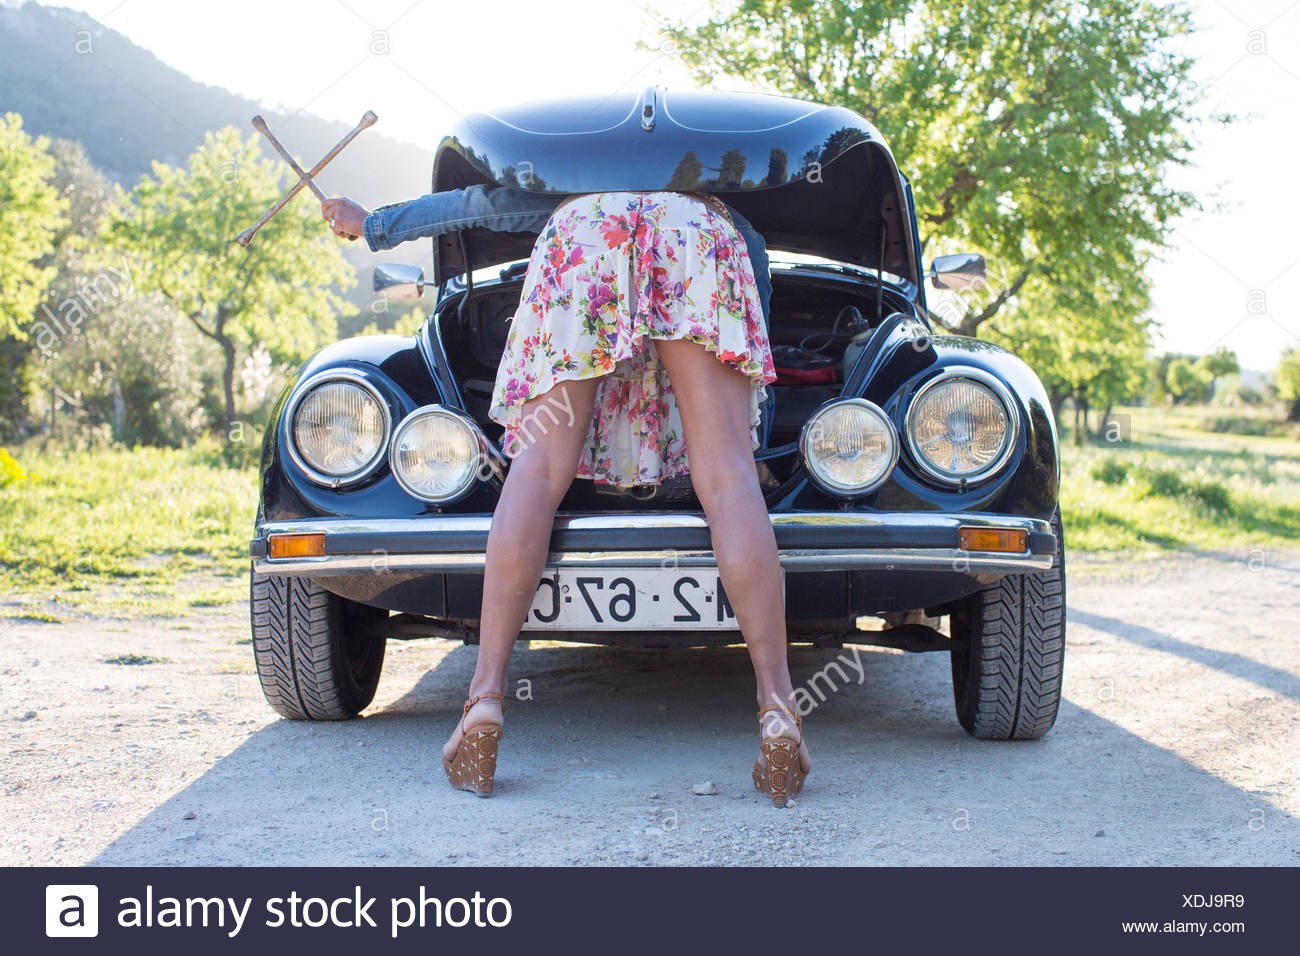 Mature woman bent over car, looking in bonnet - Stock Image